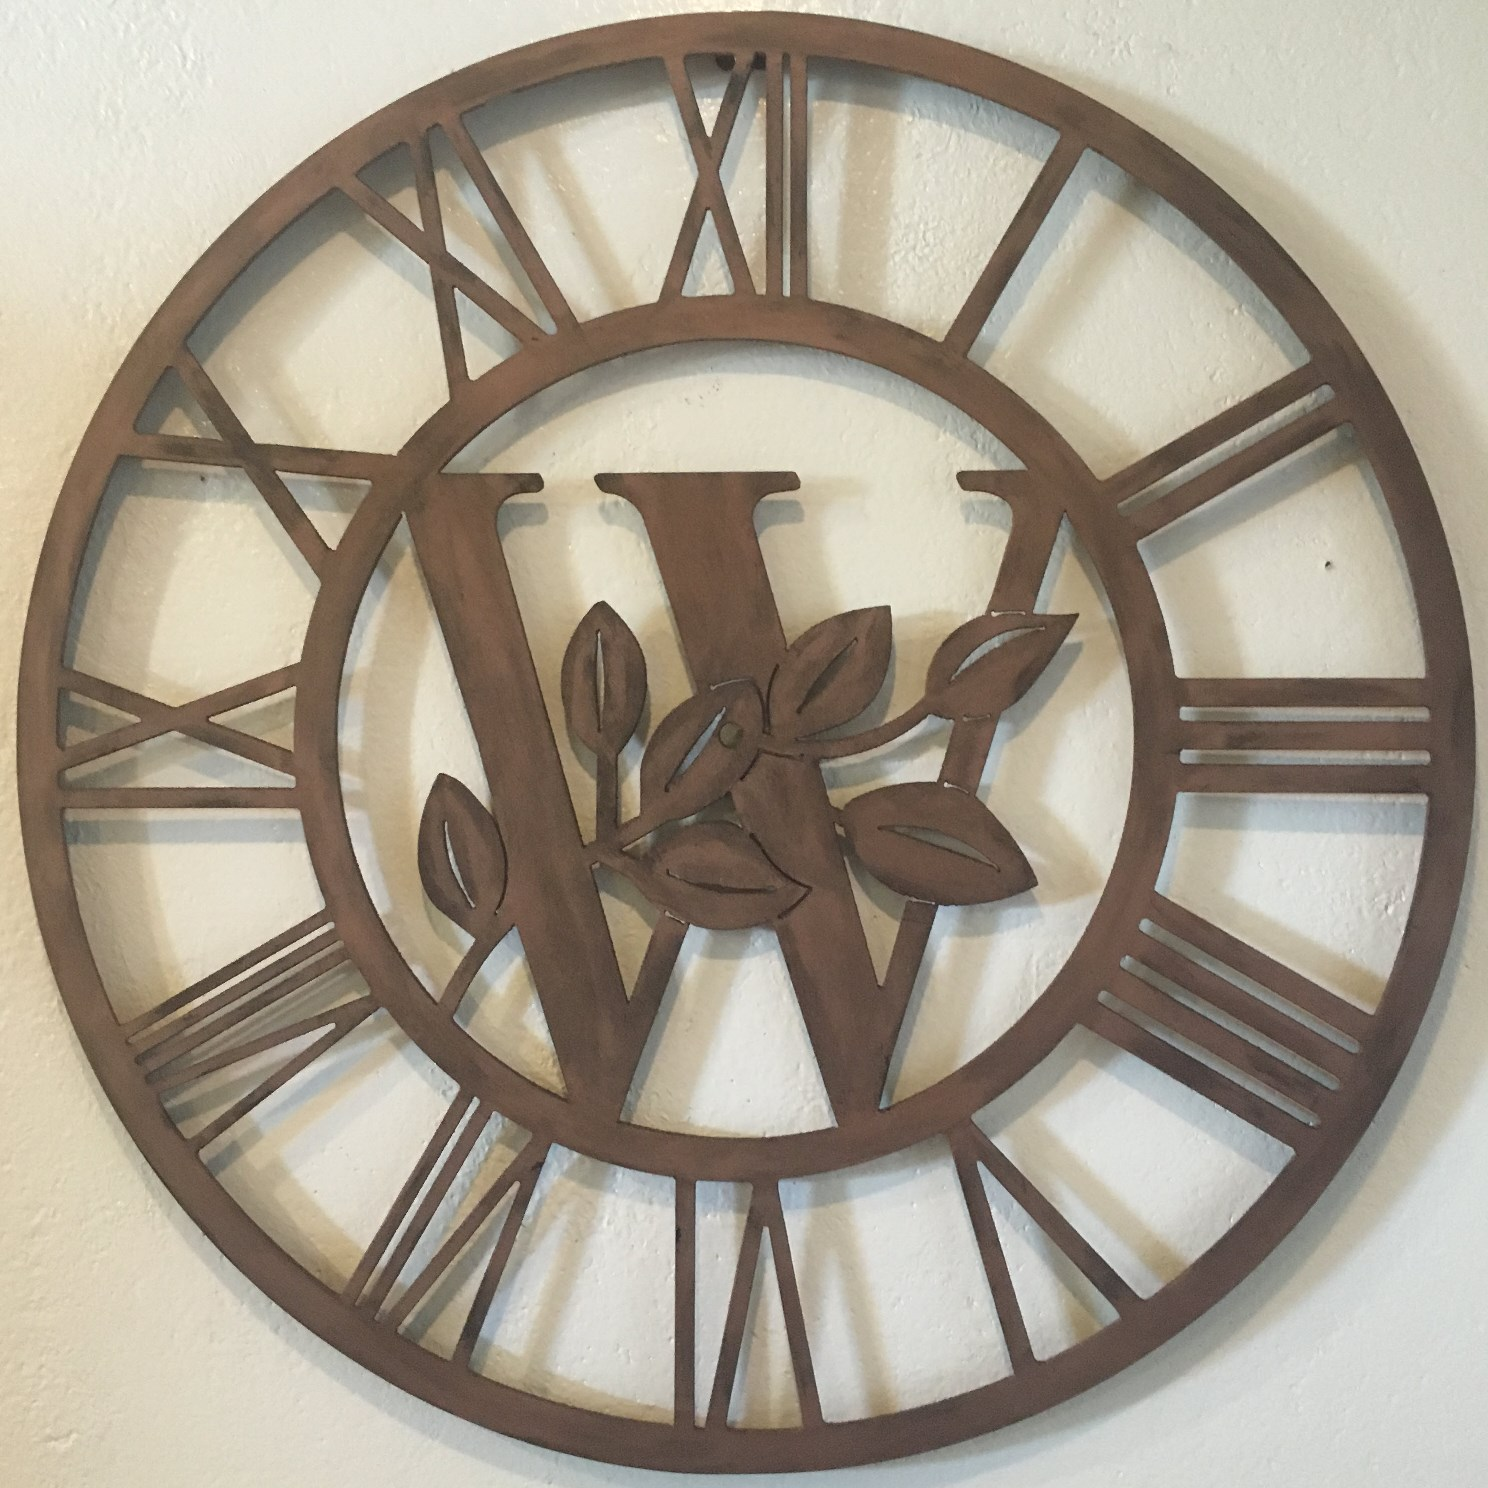 The Copper Star Copper Barn Stars Giant Clocks Copper Art